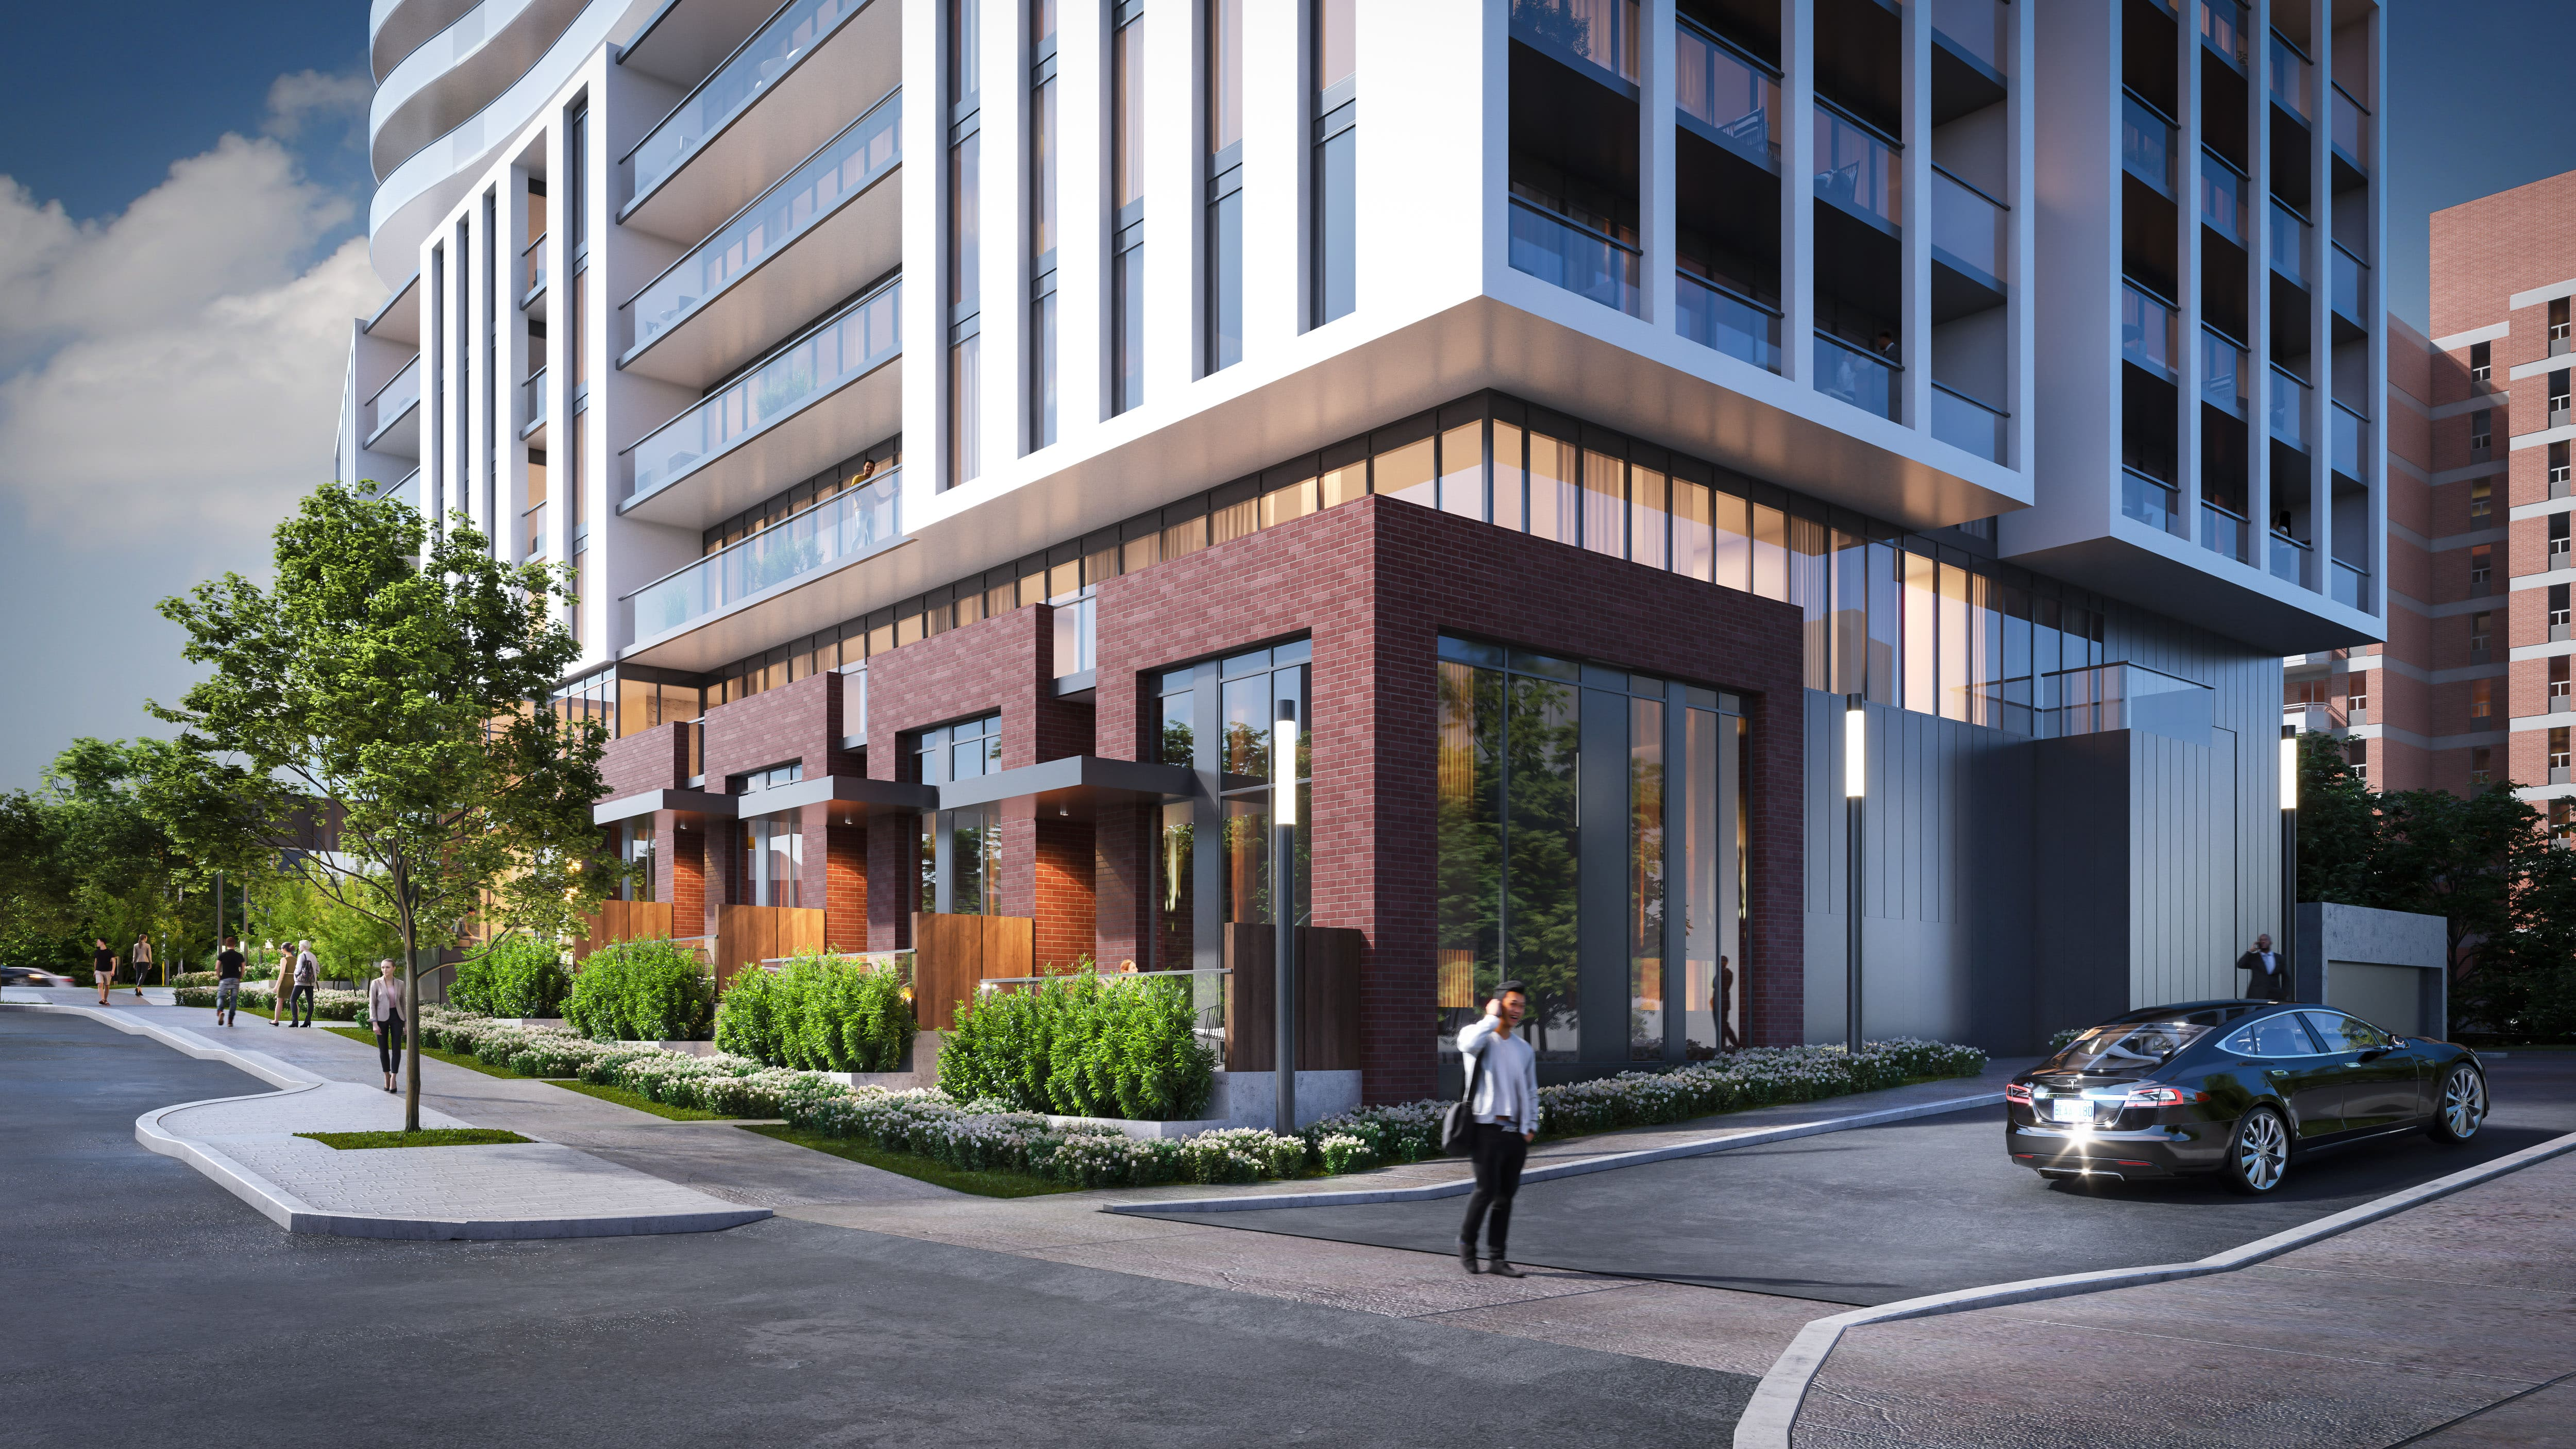 Alba Condos in Downtown Mississauga alba condos for sale 1 fairview rd e mississauga downtown